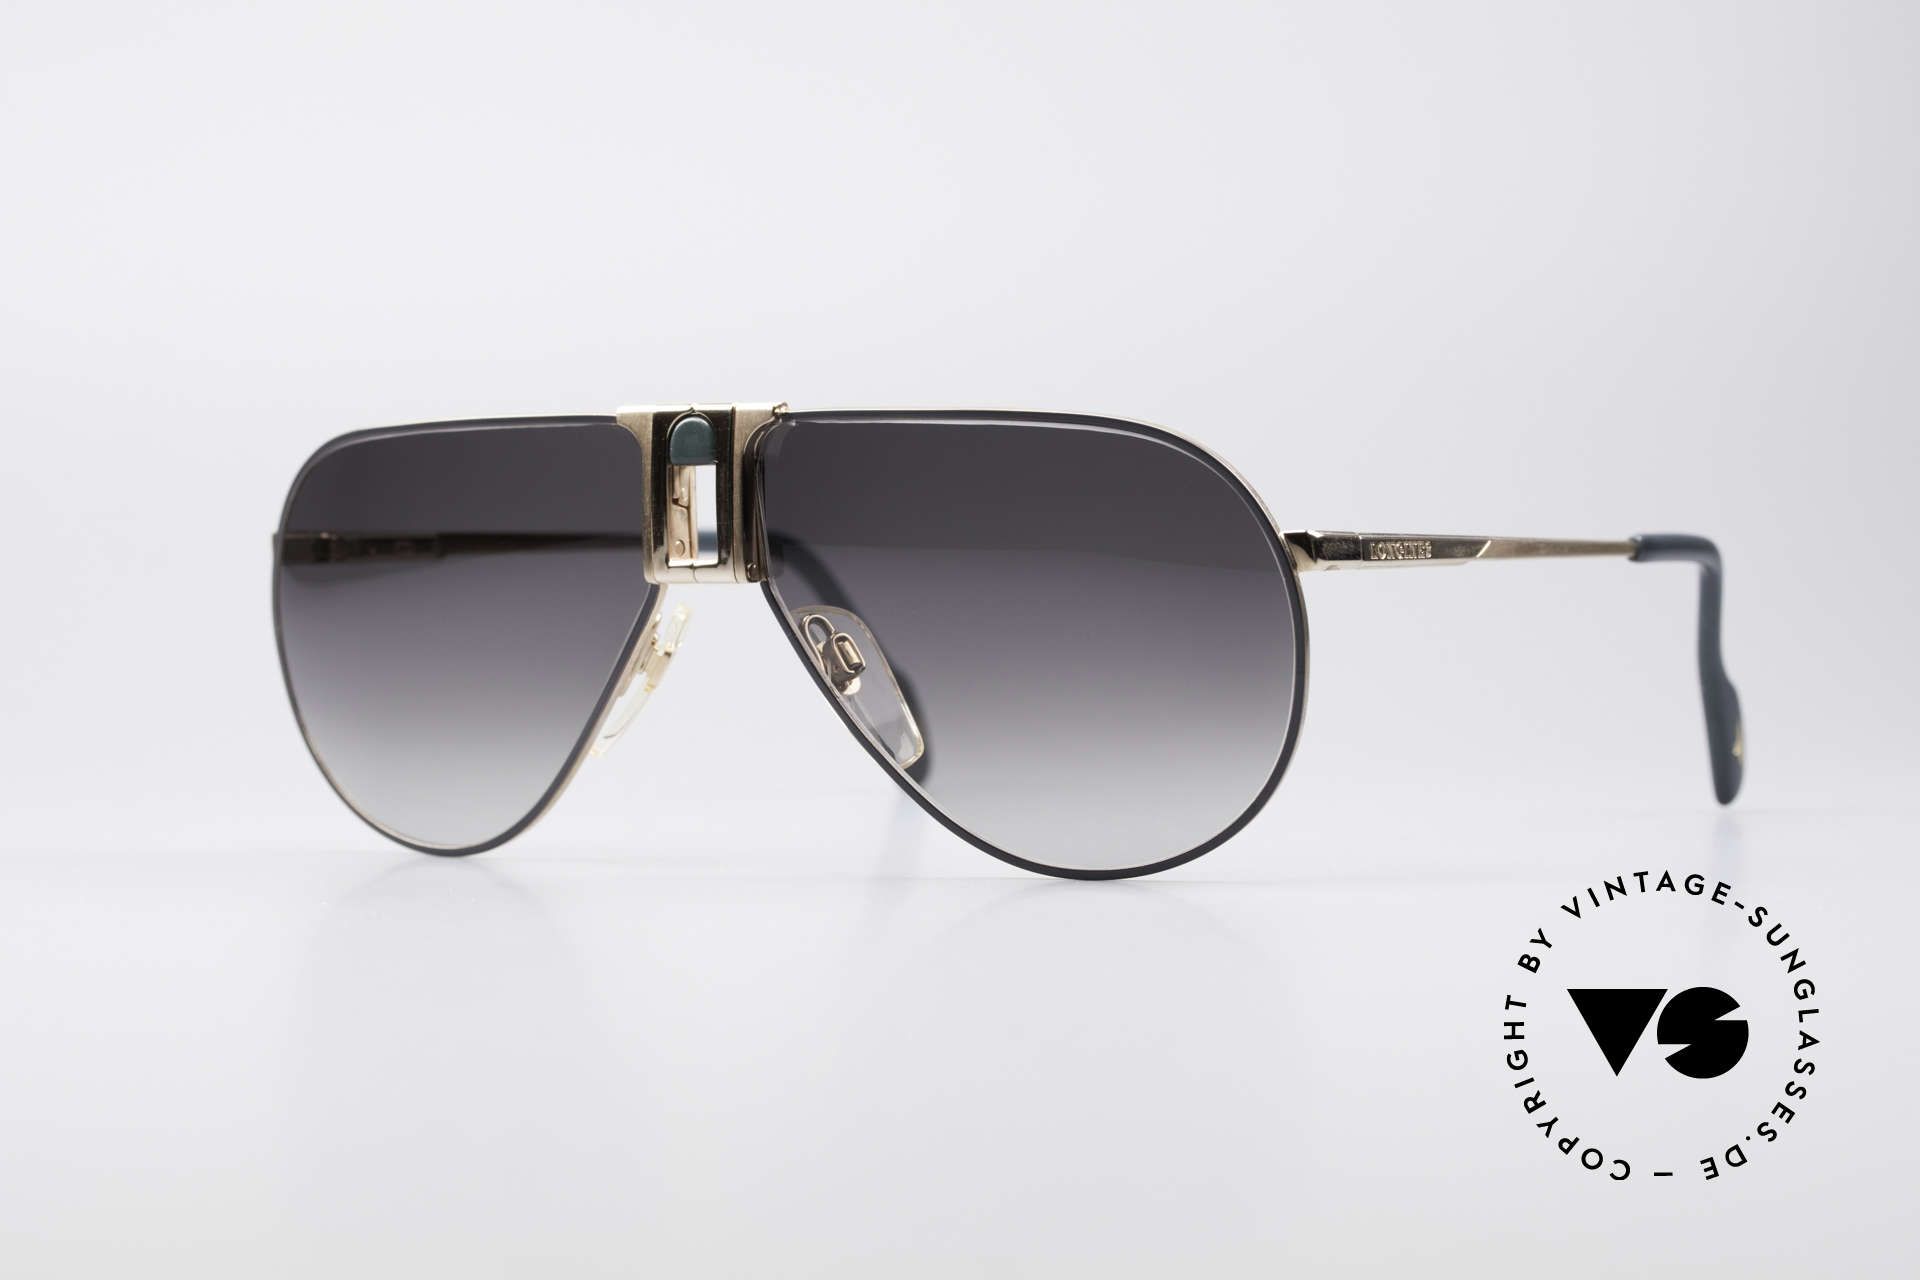 Longines 0154 1980's Aviator Sunglasses, high-end VINTAGE designer sunglasses by LONGINES, Made for Men